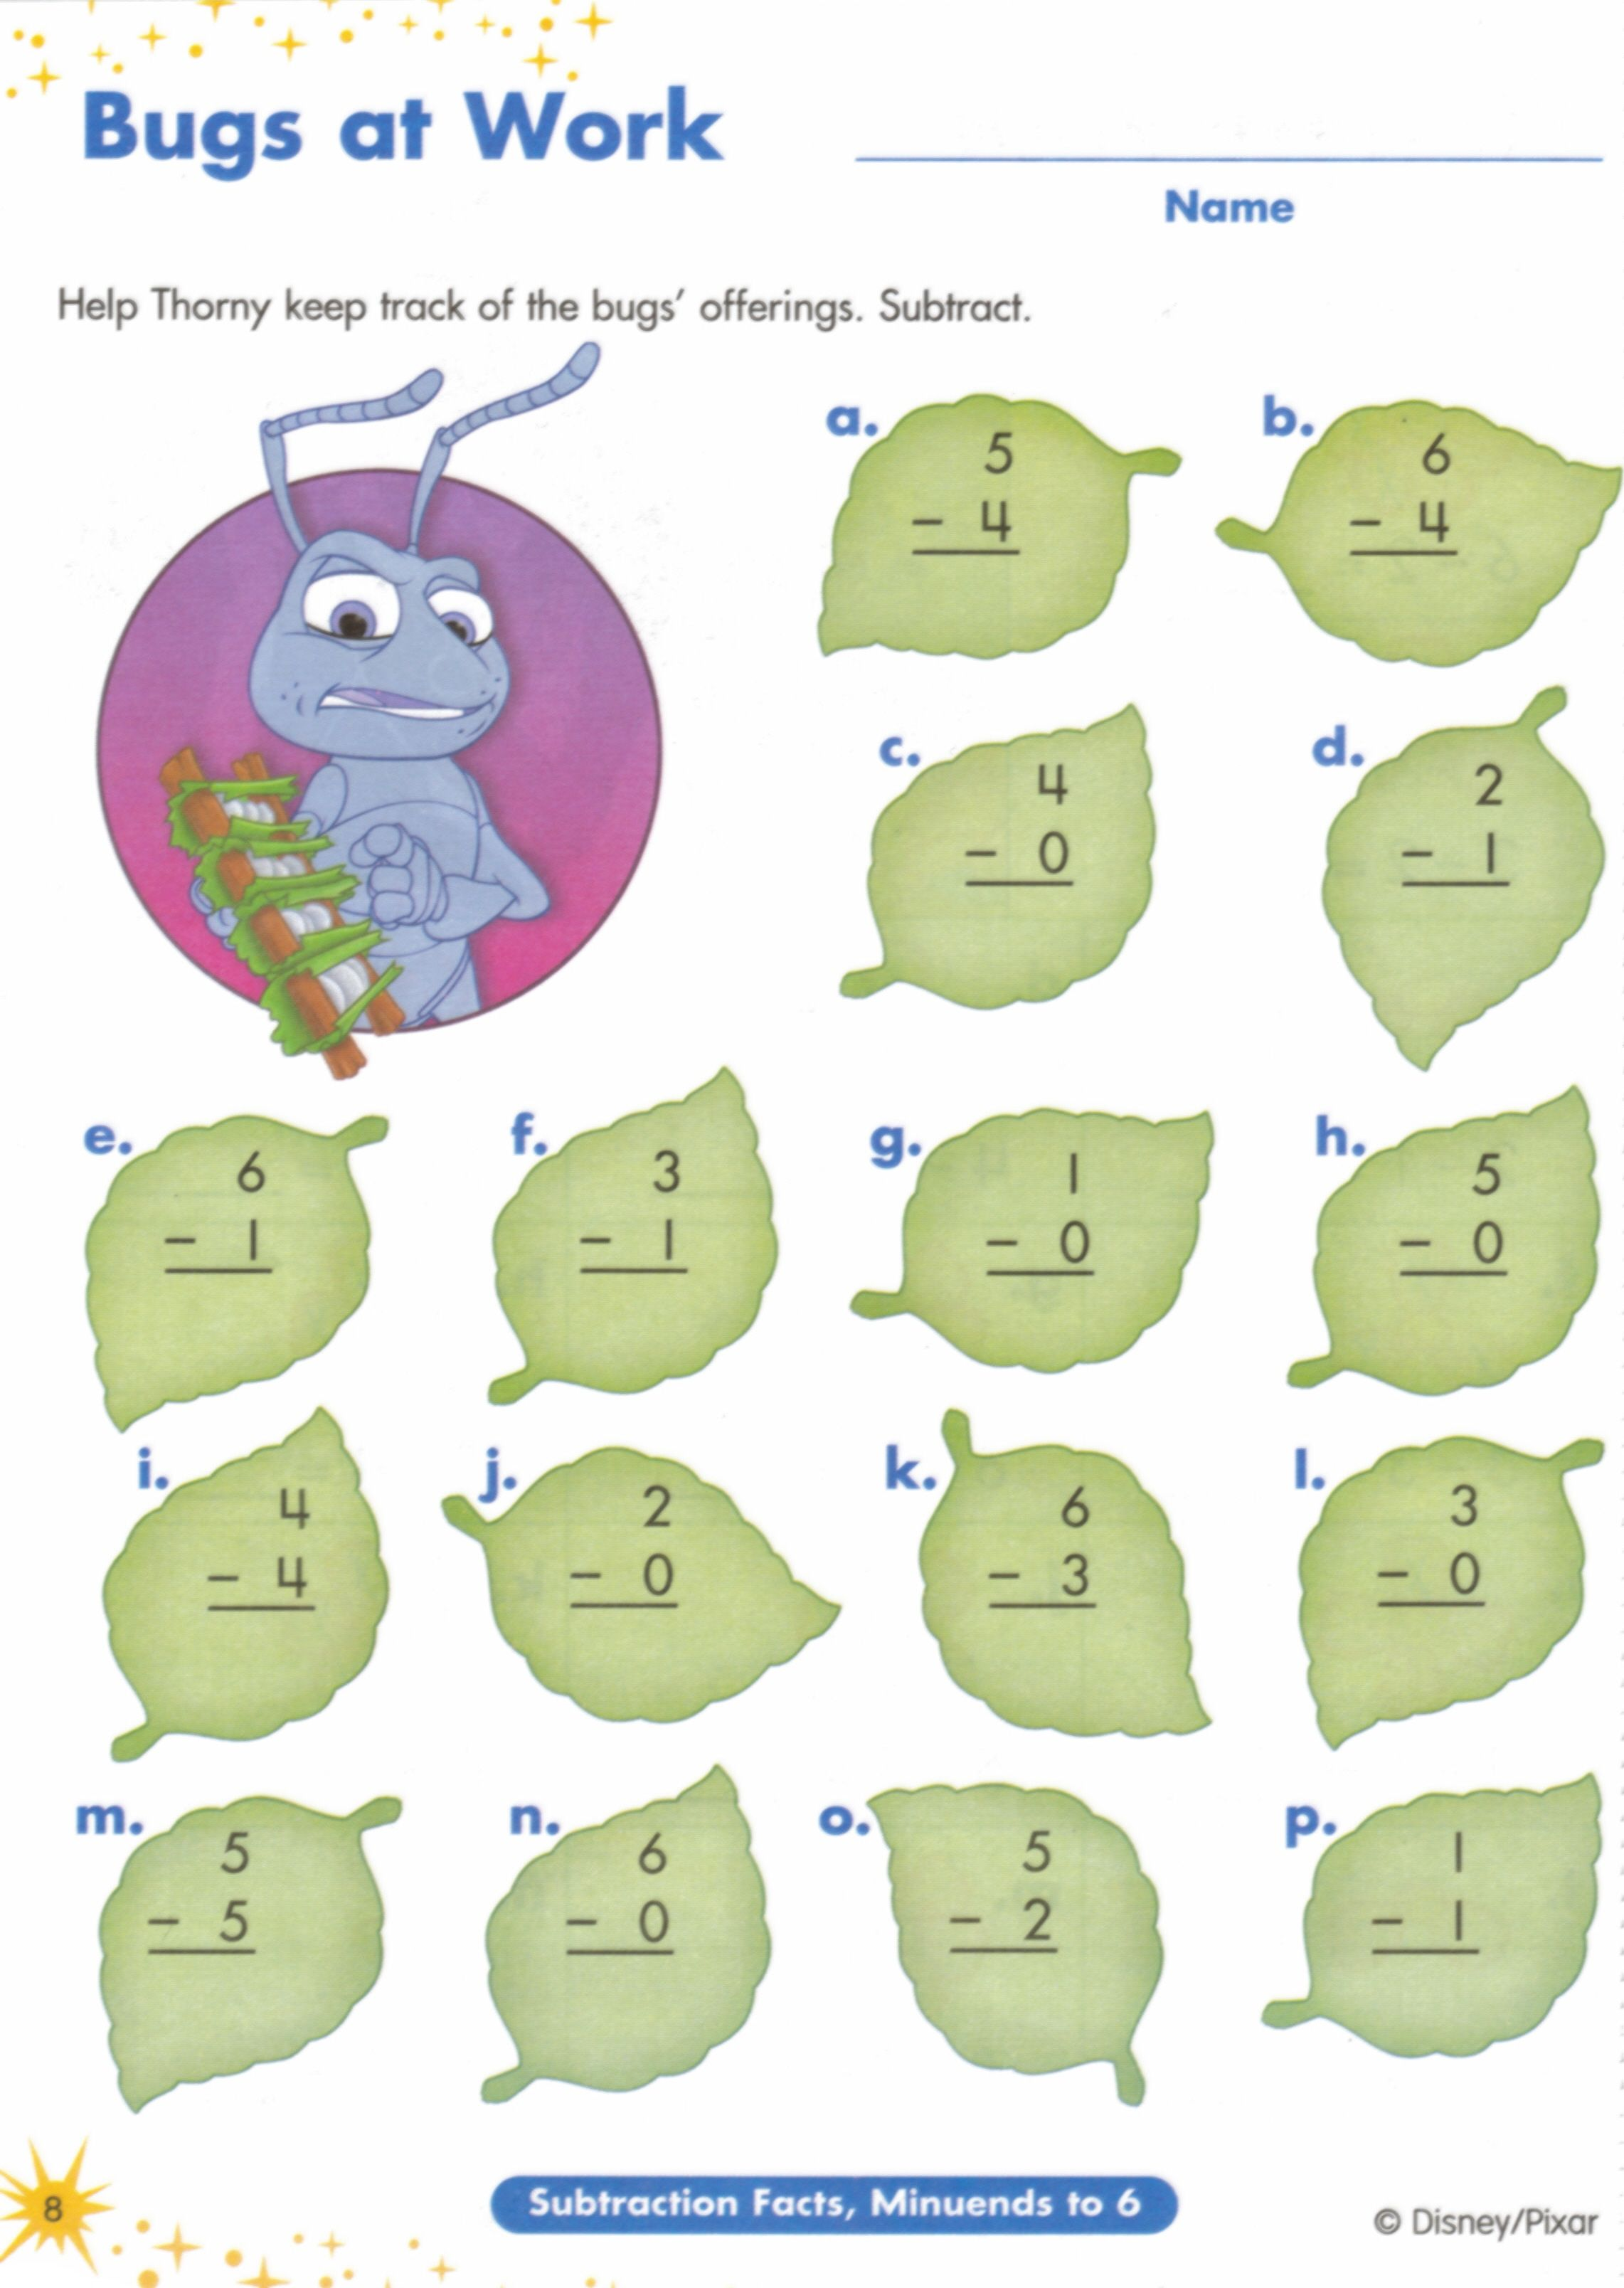 Weirdmailus  Unusual  Images About Worksheets On Pinterest  Fun Facts For Kids  With Great  Images About Worksheets On Pinterest  Fun Facts For Kids Earth Day Worksheets And Jungles With Nice Halloween First Grade Worksheets Also Th Grade Force And Motion Worksheets In Addition Grade  Comprehension Worksheets And Esl Life Skills Worksheets As Well As Proper Fraction Worksheets Additionally Math Worksheets For High School With Answers From Pinterestcom With Weirdmailus  Great  Images About Worksheets On Pinterest  Fun Facts For Kids  With Nice  Images About Worksheets On Pinterest  Fun Facts For Kids Earth Day Worksheets And Jungles And Unusual Halloween First Grade Worksheets Also Th Grade Force And Motion Worksheets In Addition Grade  Comprehension Worksheets From Pinterestcom